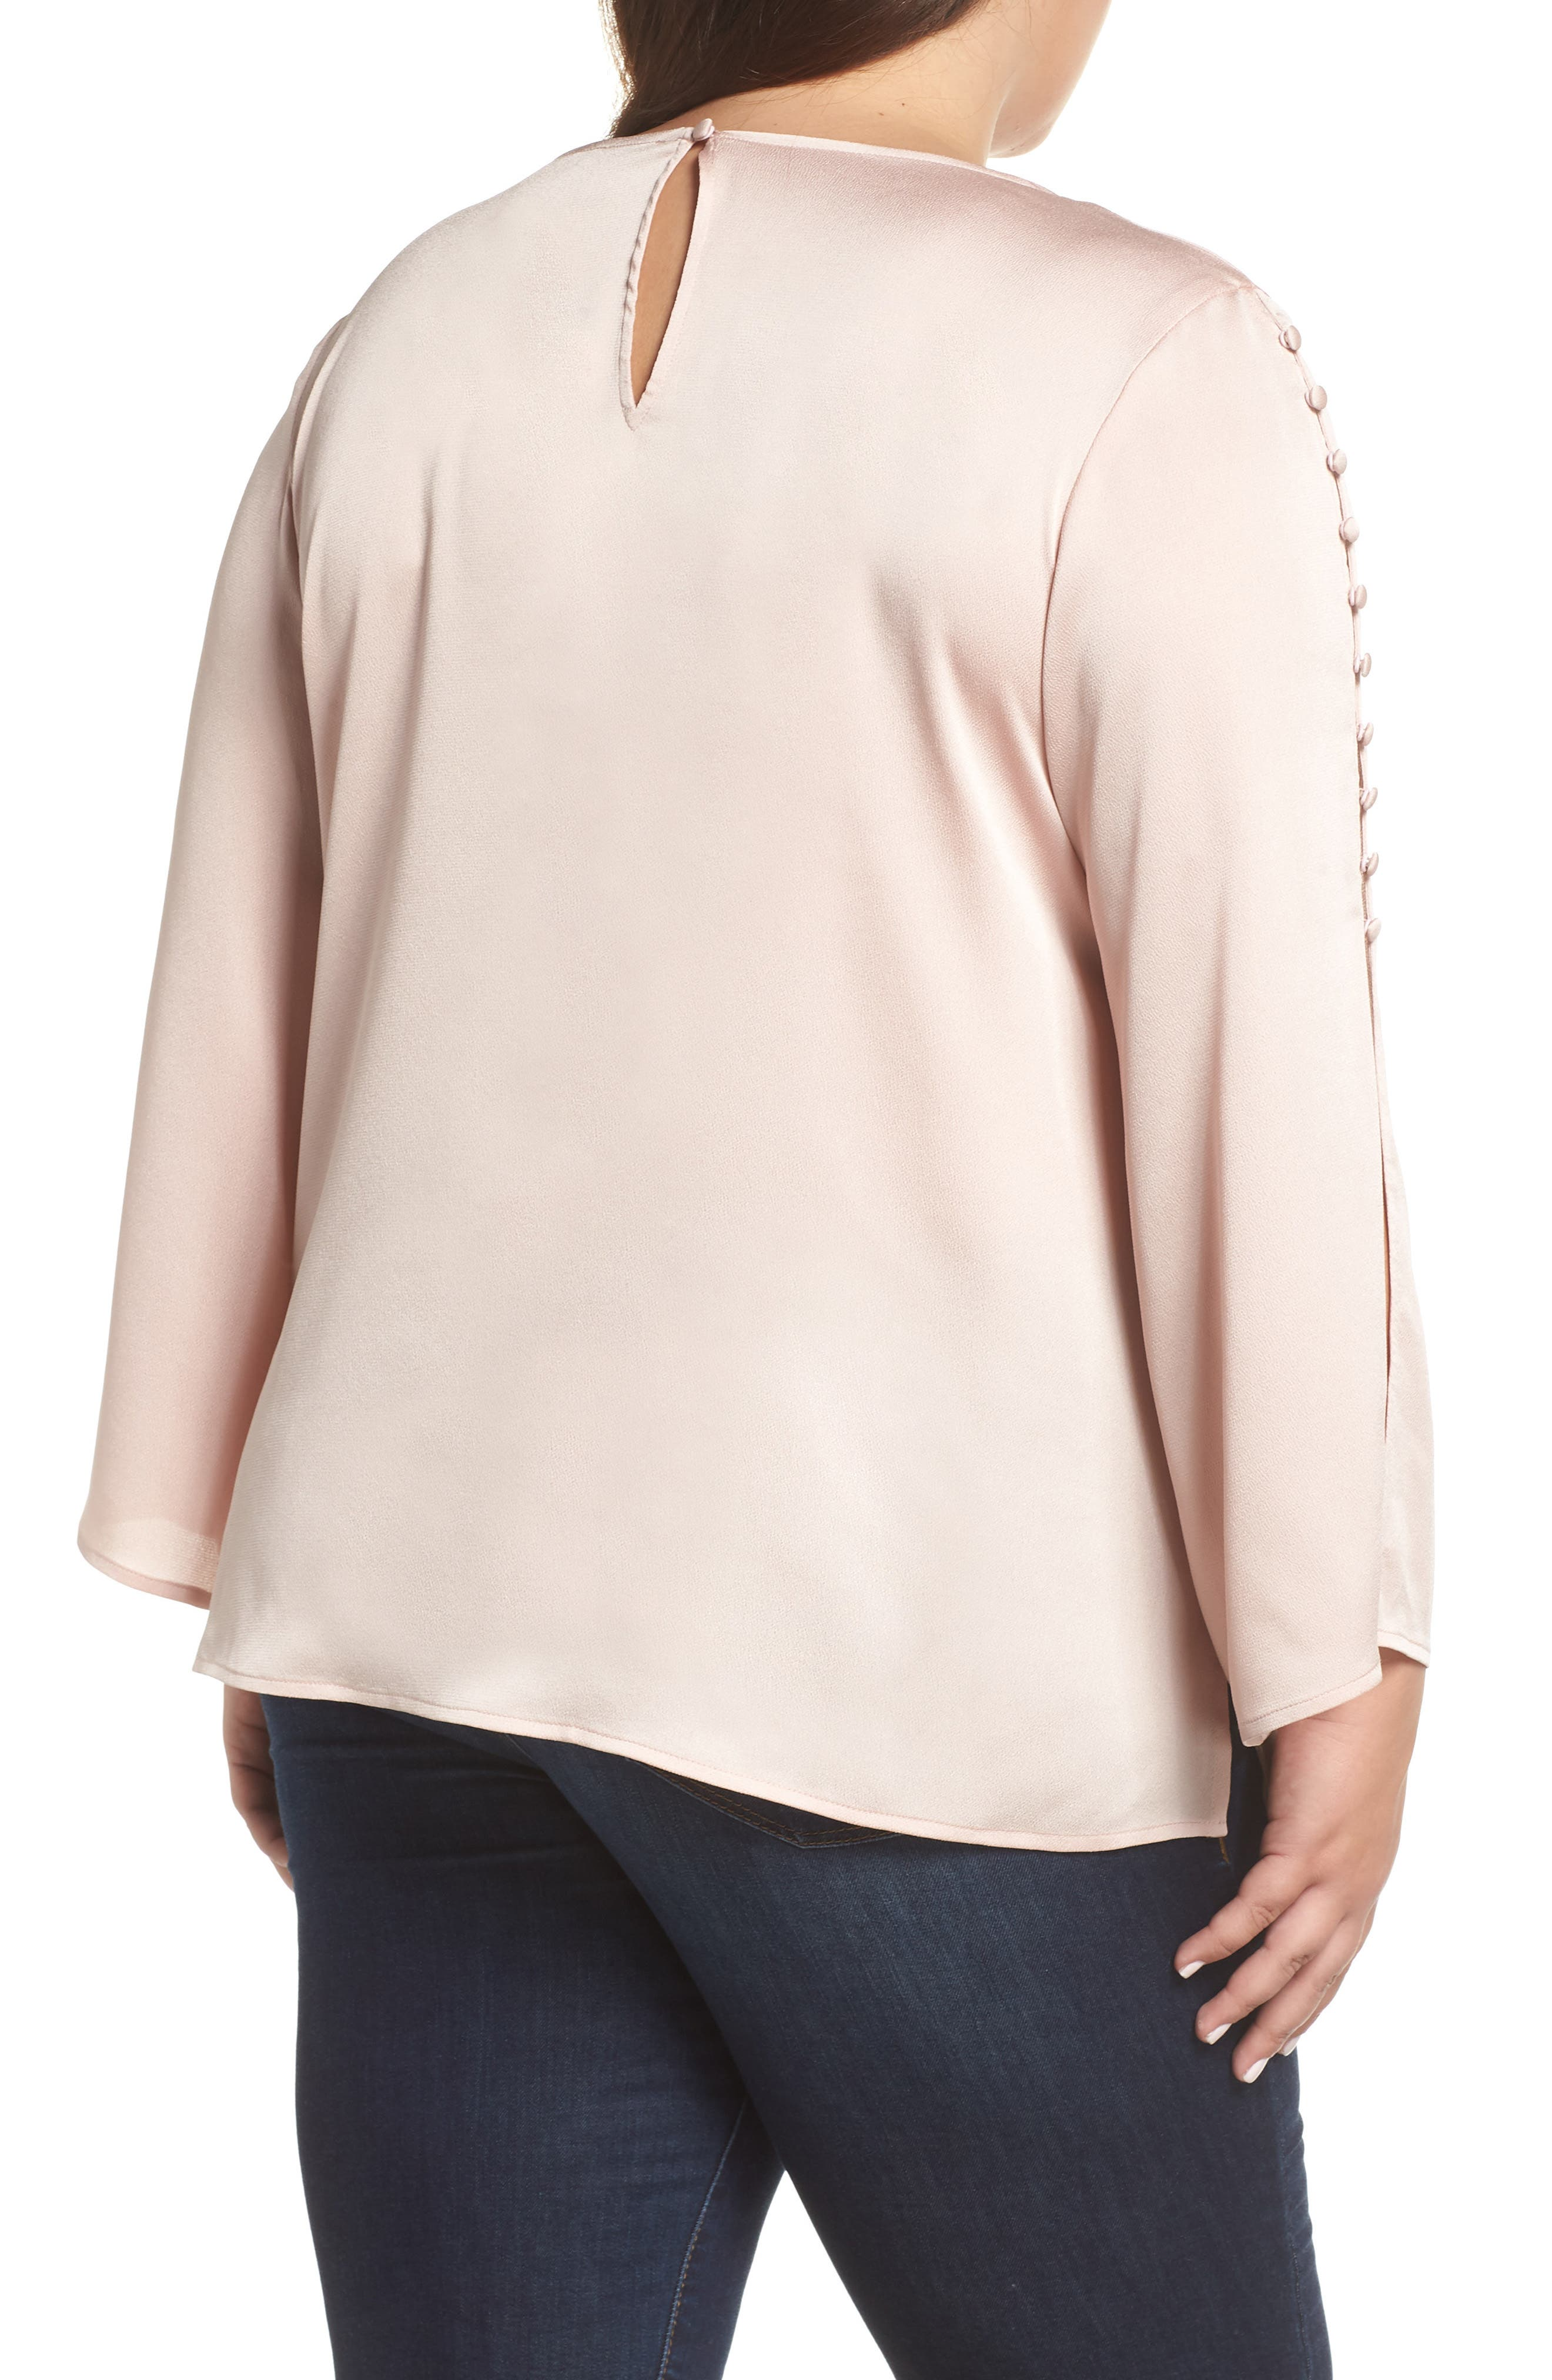 VINCE CAMUTO, Button Bell Sleeve Blouse, Alternate thumbnail 2, color, ROSE BUFF